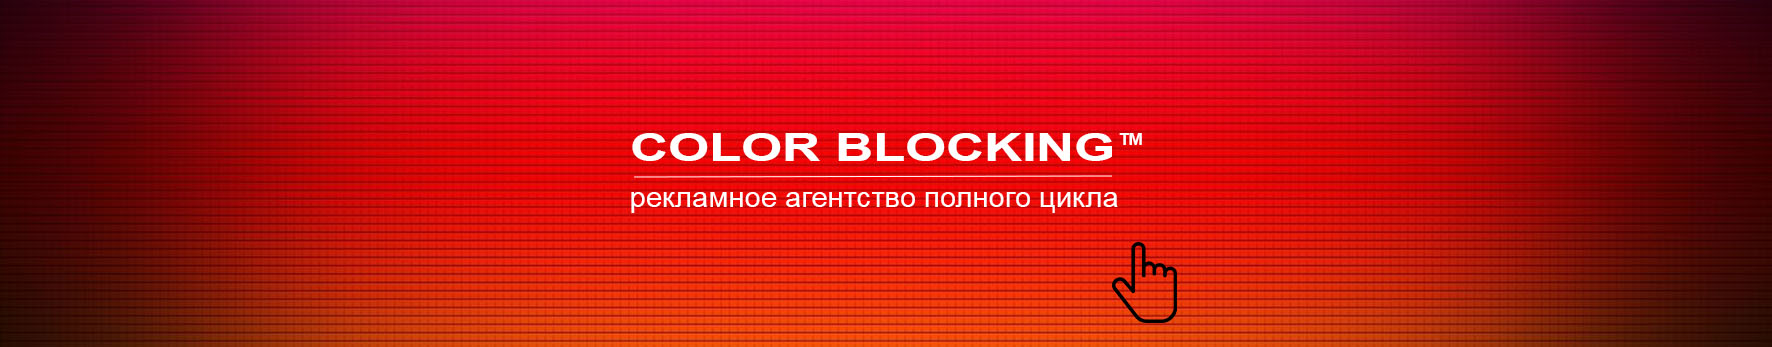 Проект INSTA COLOR BLOCKING агенство